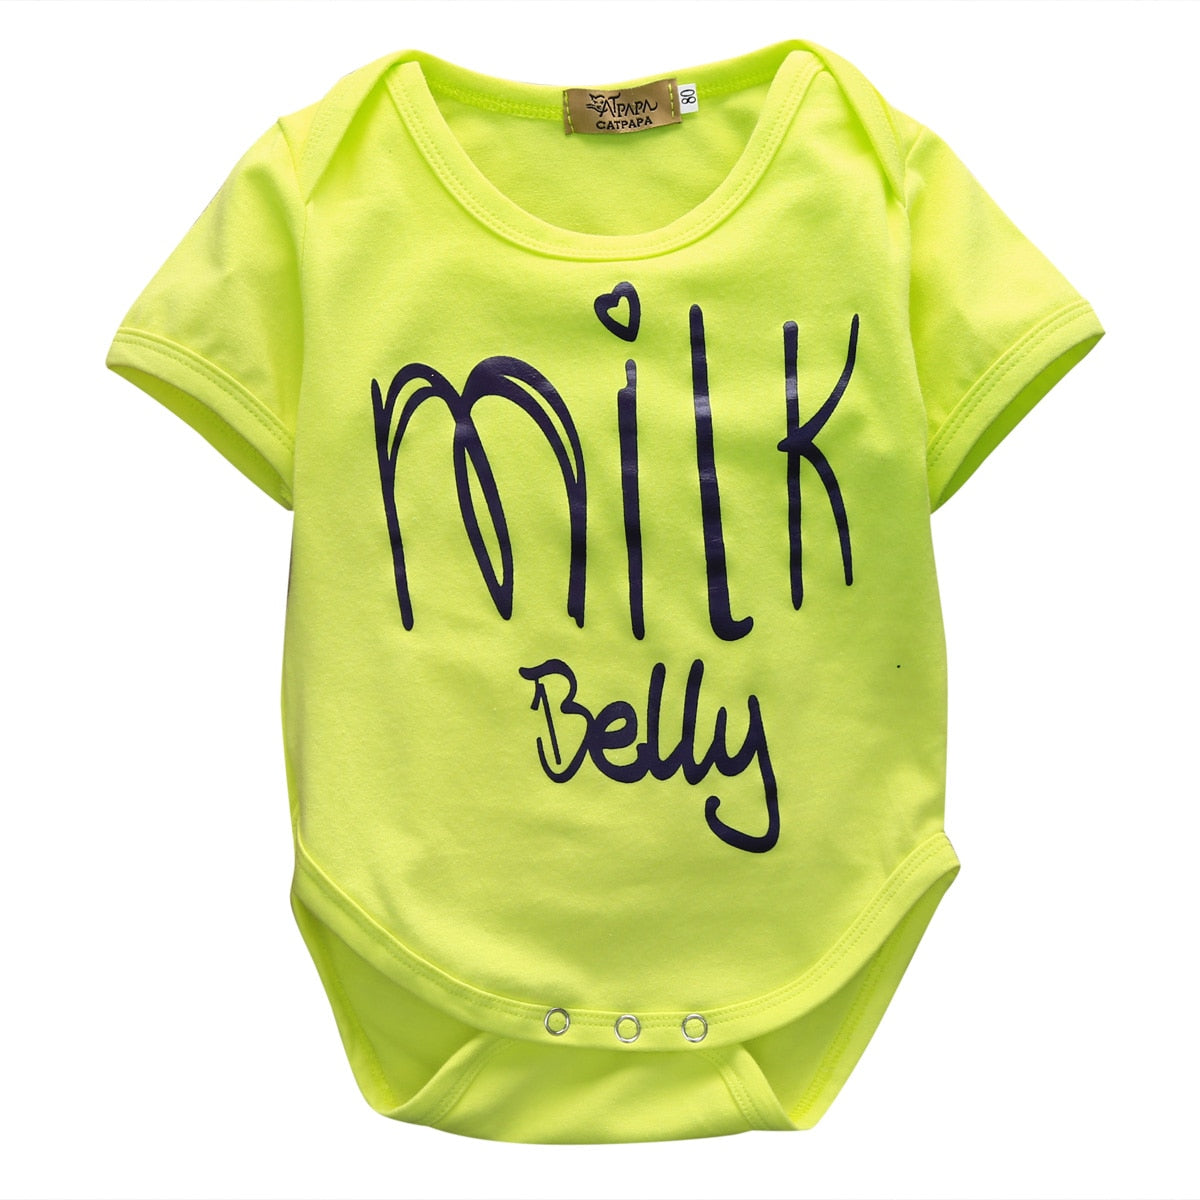 Toddler Infant Newborn Baby Boy Girls Summer Casual Clothes Outfit Romper Jumpsuit Sunsuit 0-18Months-eosegal